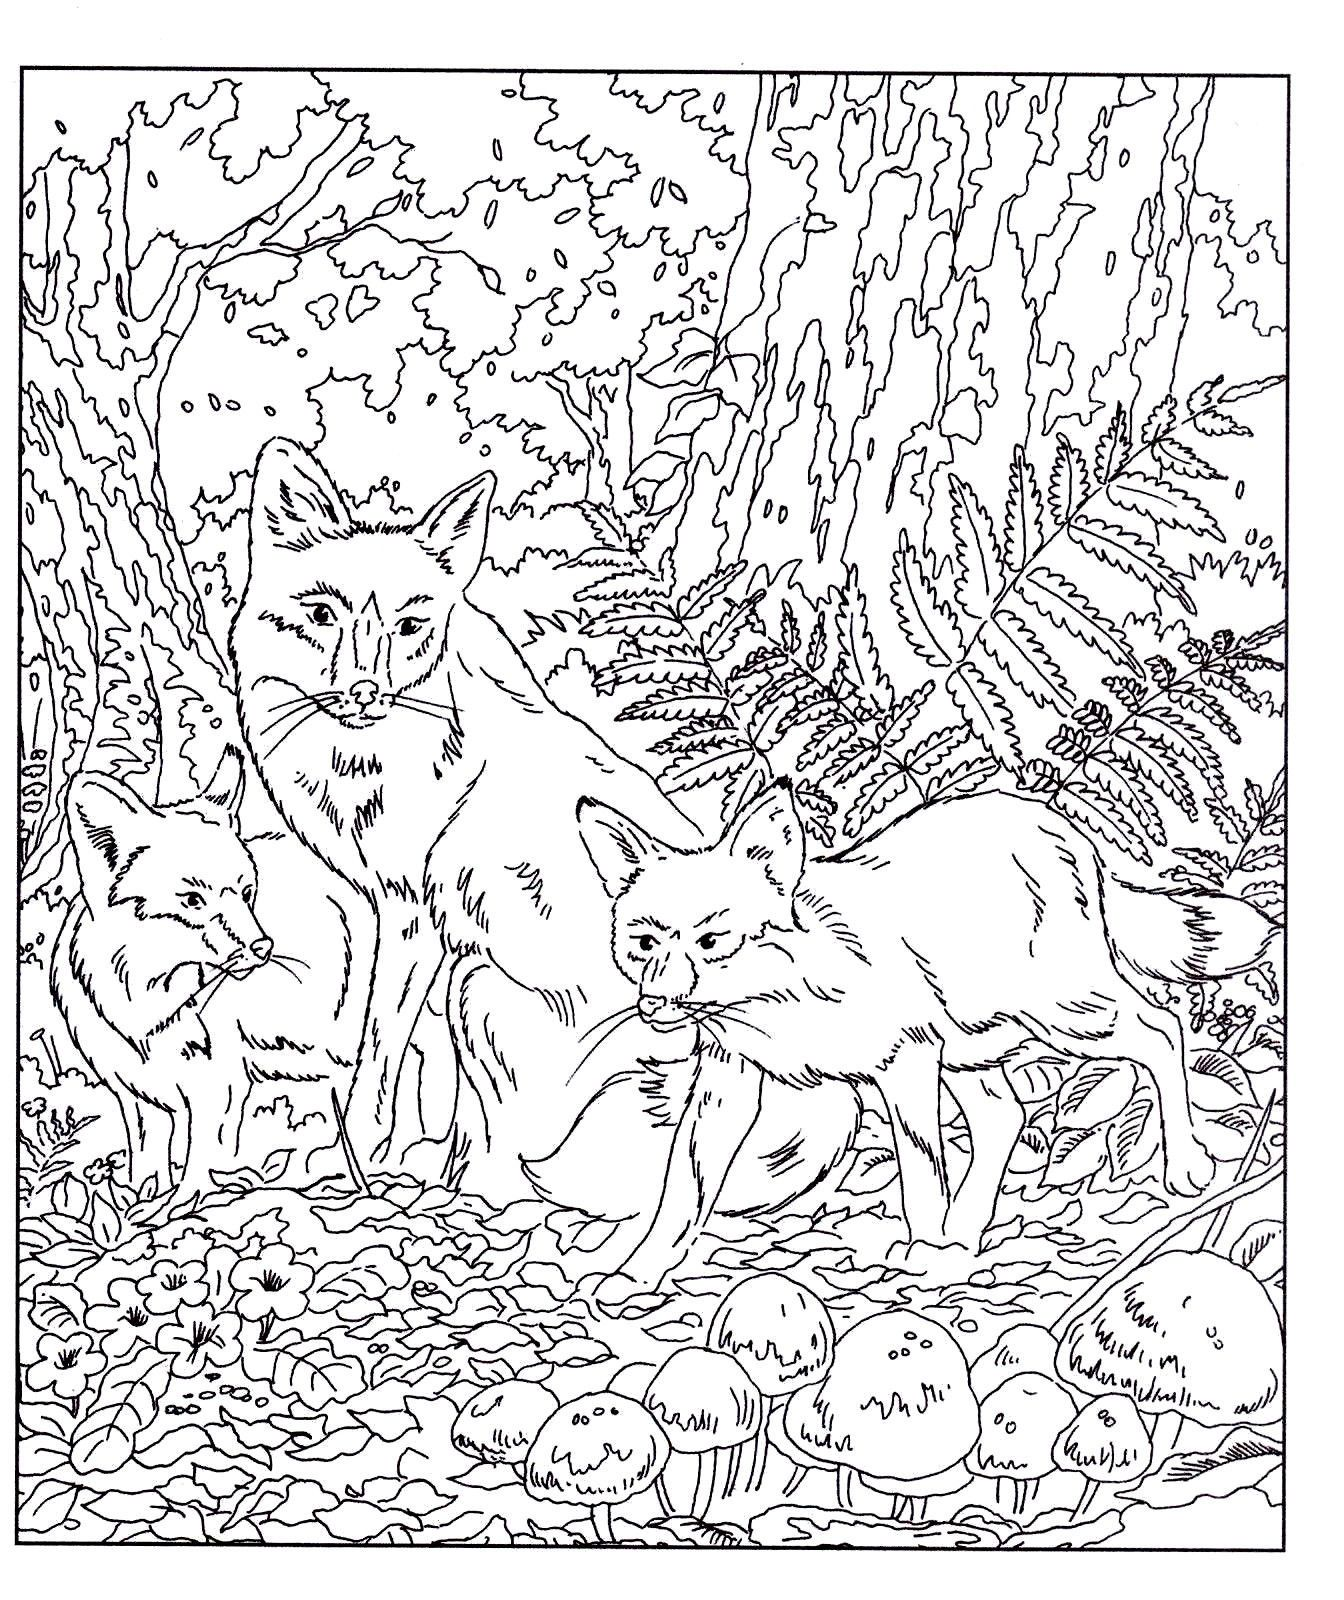 Wildlife Animals Adult Colouring Book Doodle Design New Mindfulness P B 3